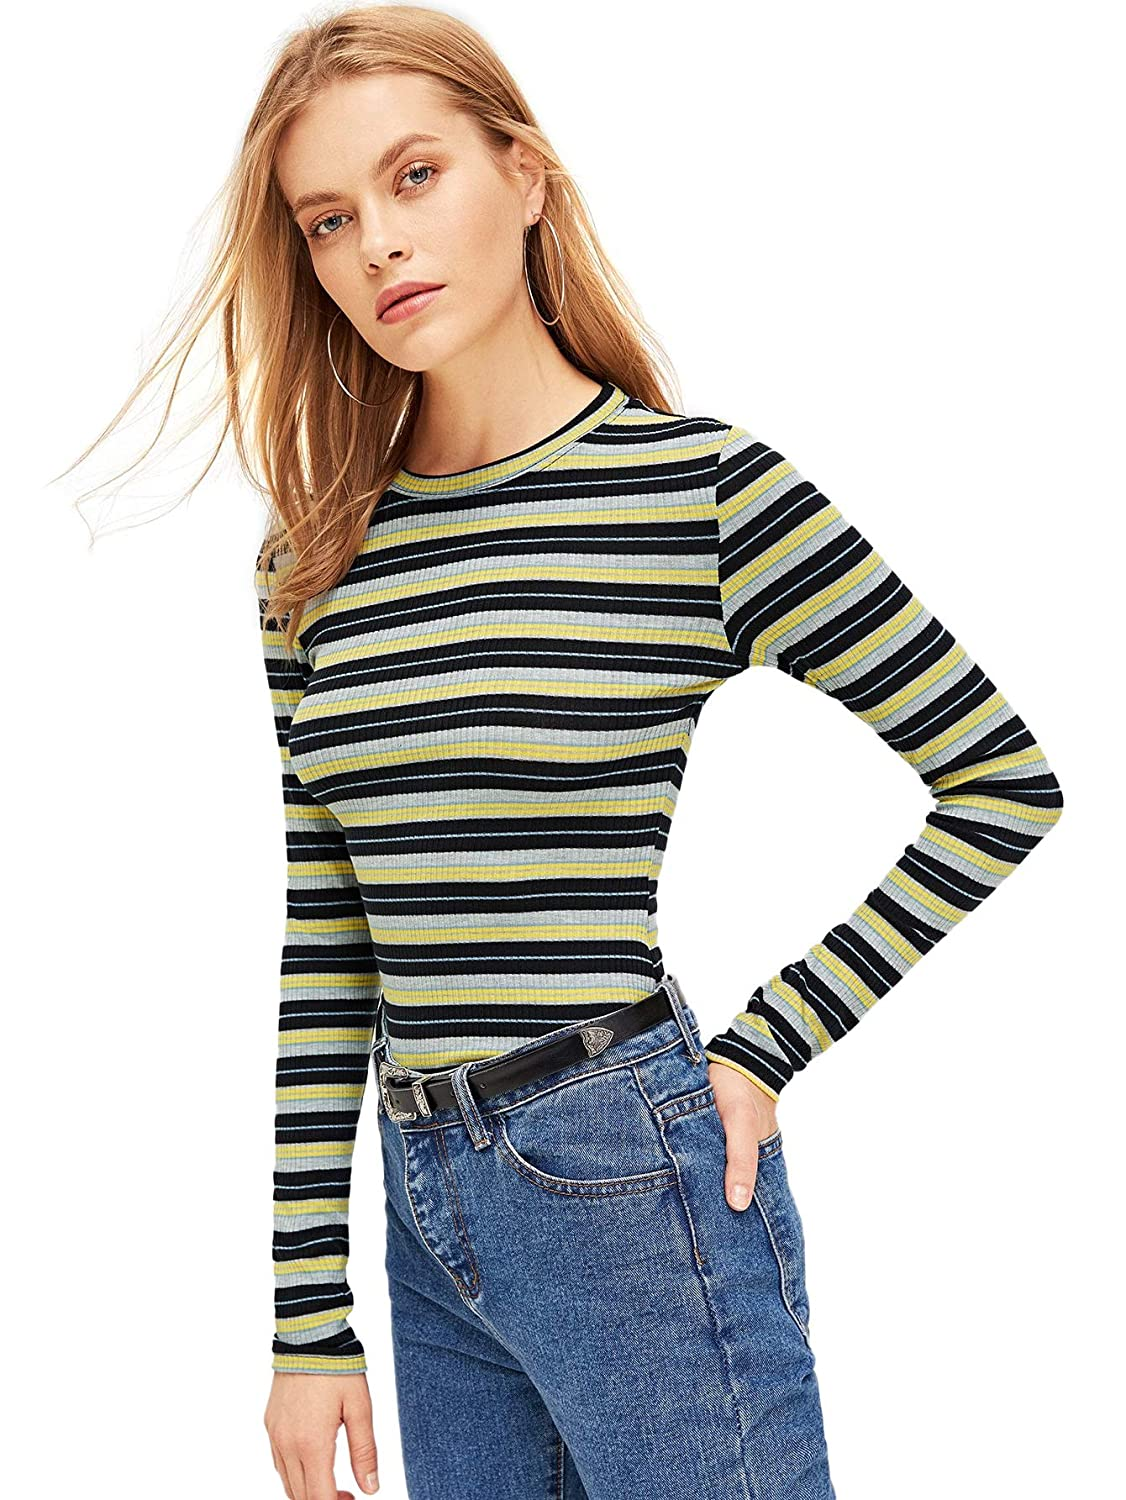 Multicolor13 Milumia Women's Casual Striped Ribbed Tee Knit Crop Top